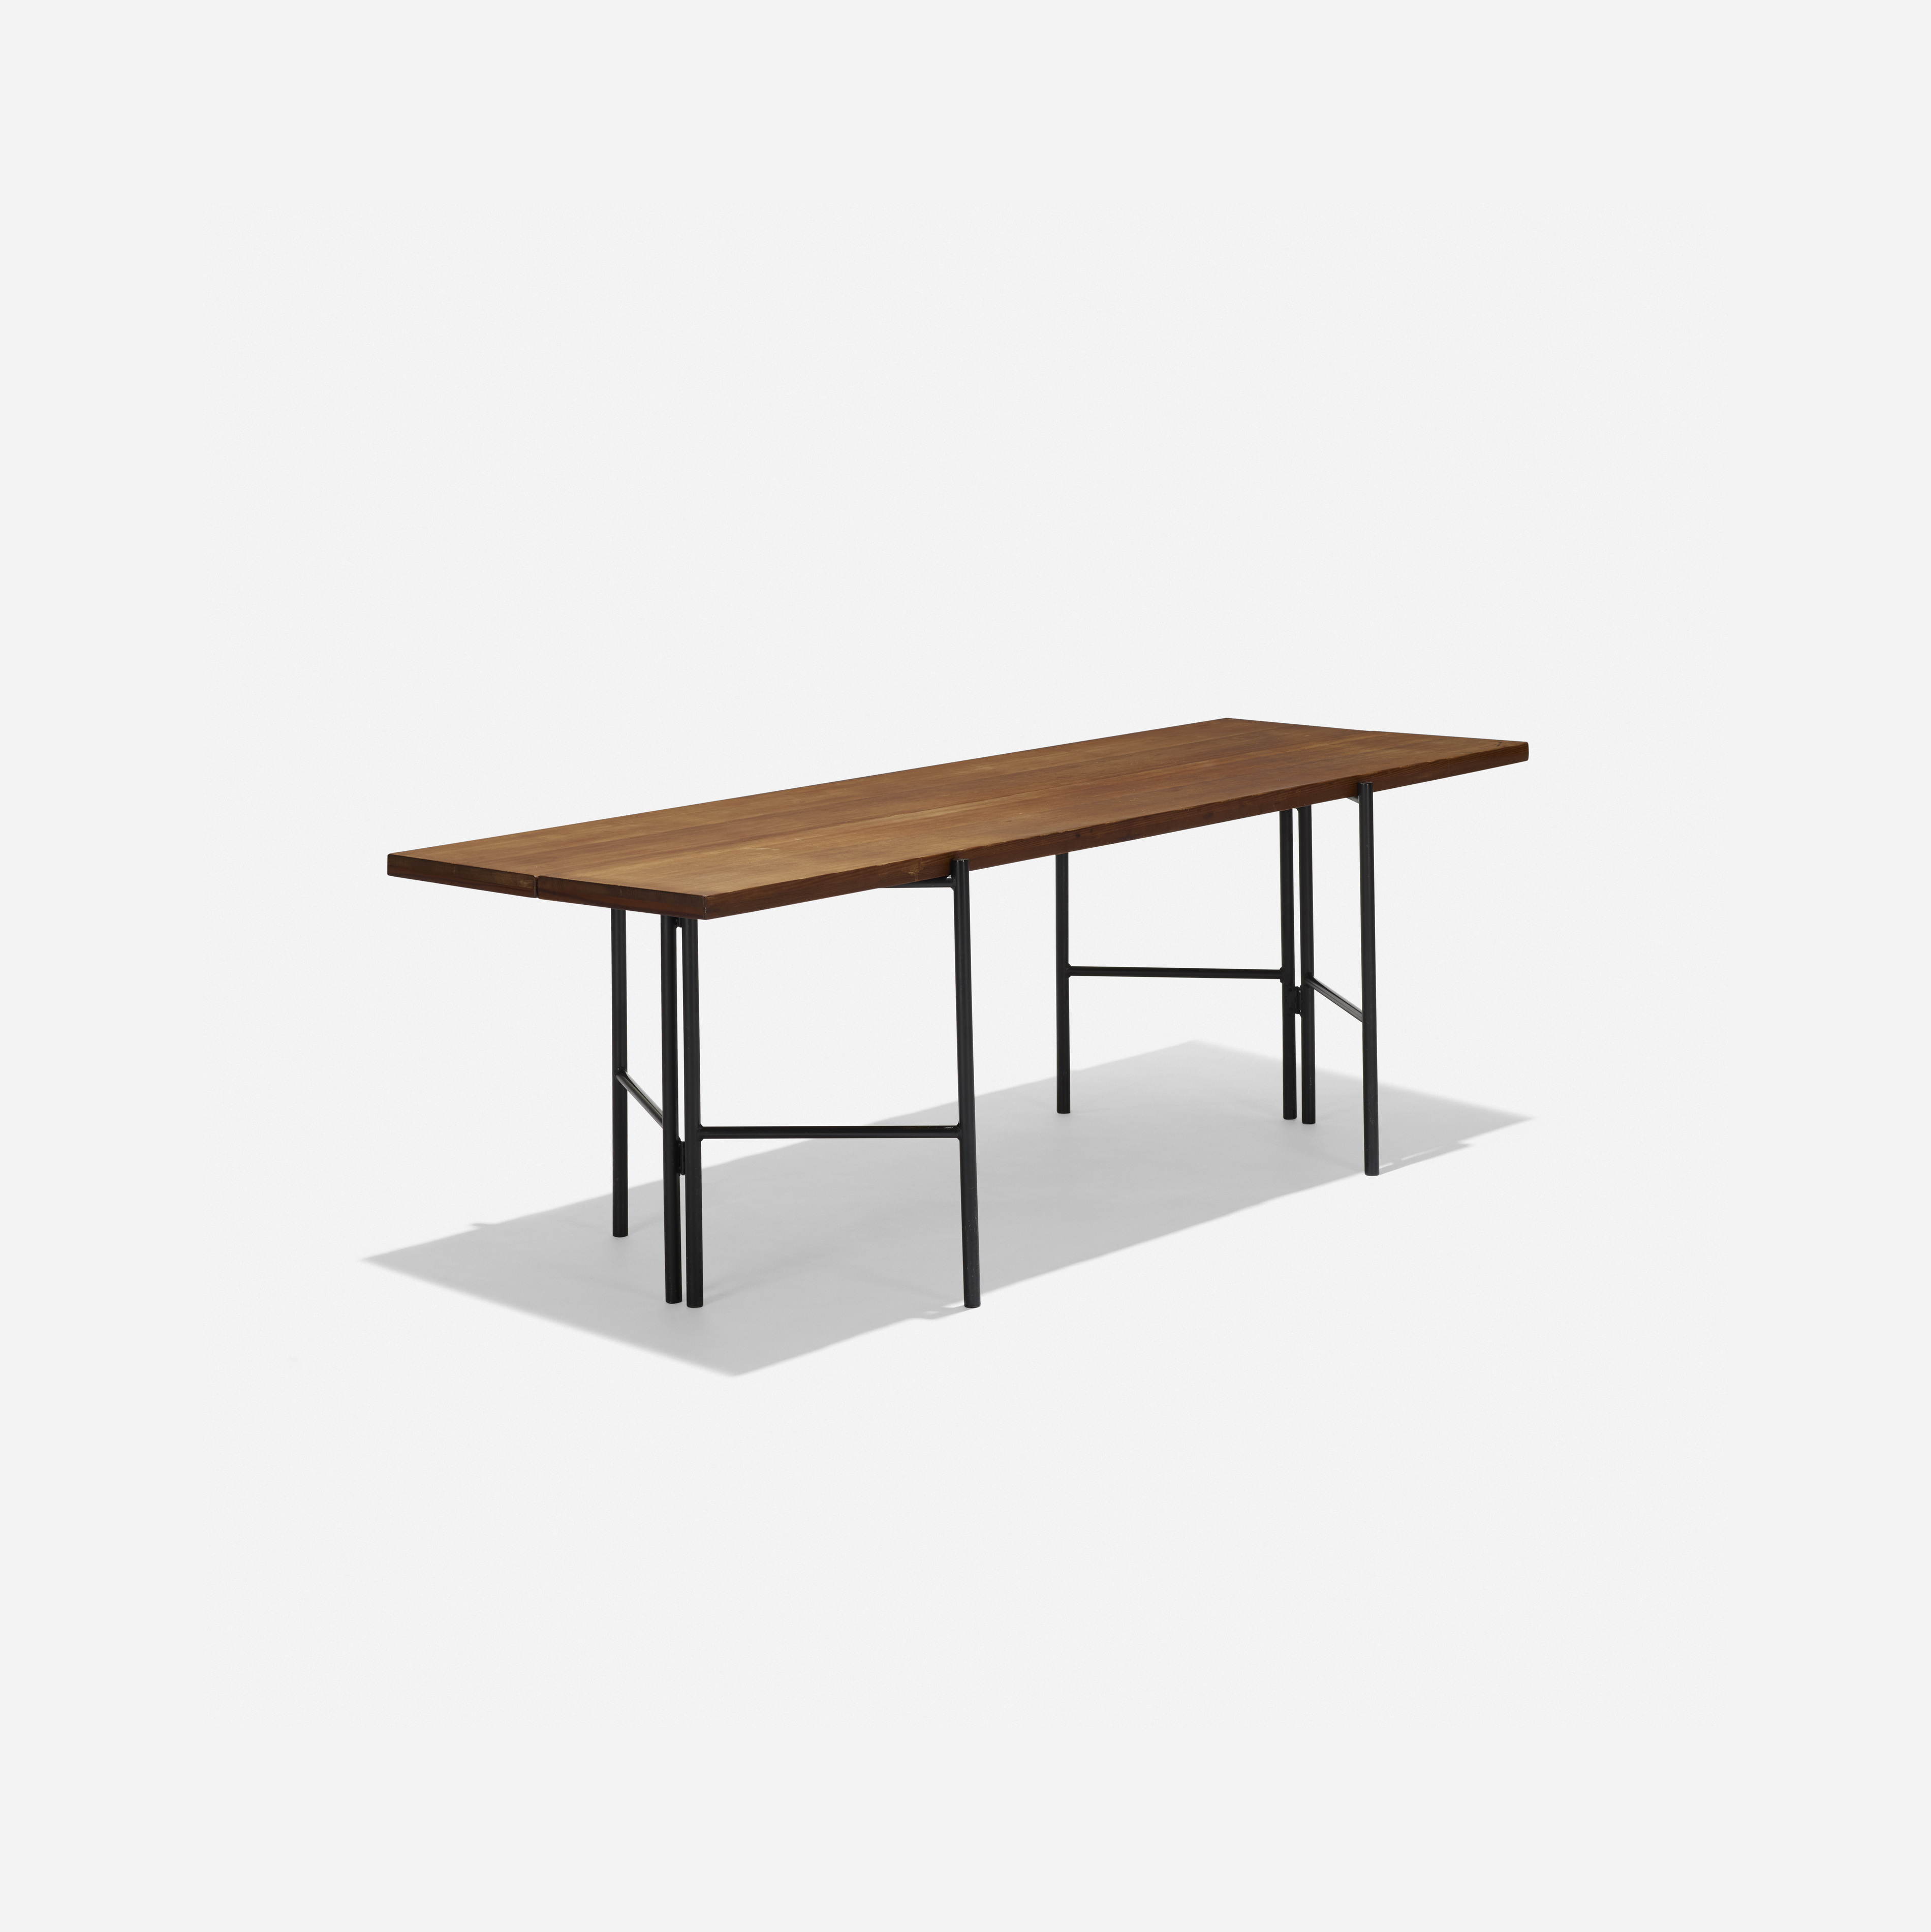 Costco Folding Tables   Costco Folding Table   Kids Folding Table and Chairs Costco